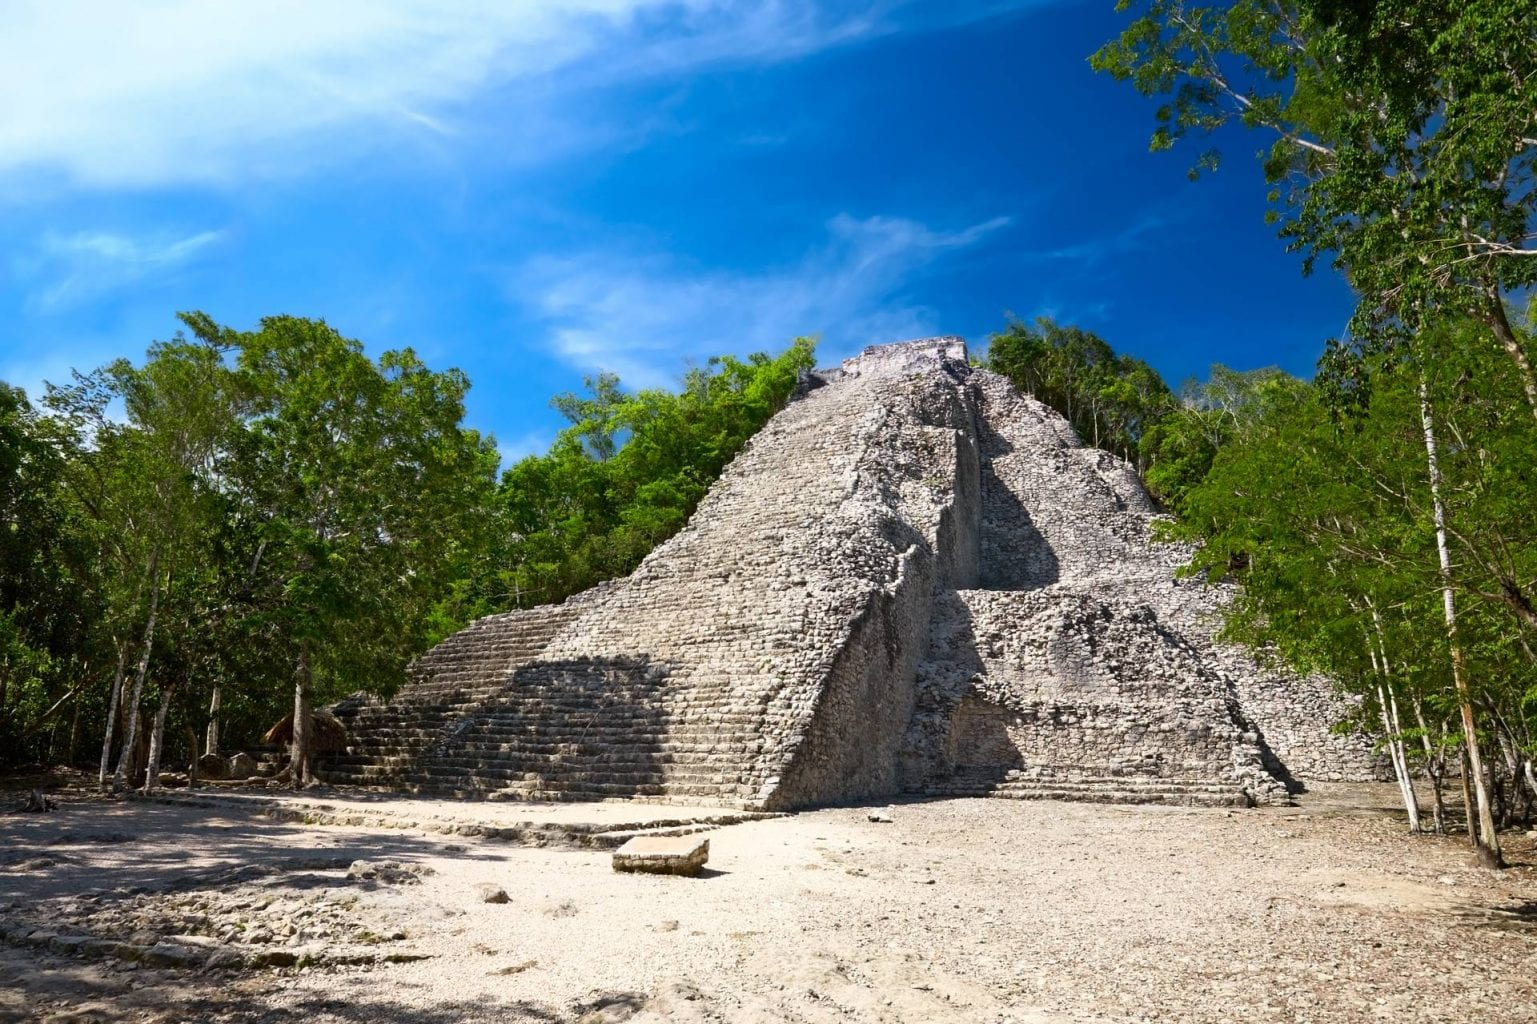 Ruins of the ancient site of Coba, Mexico. Credit: Shuttestock